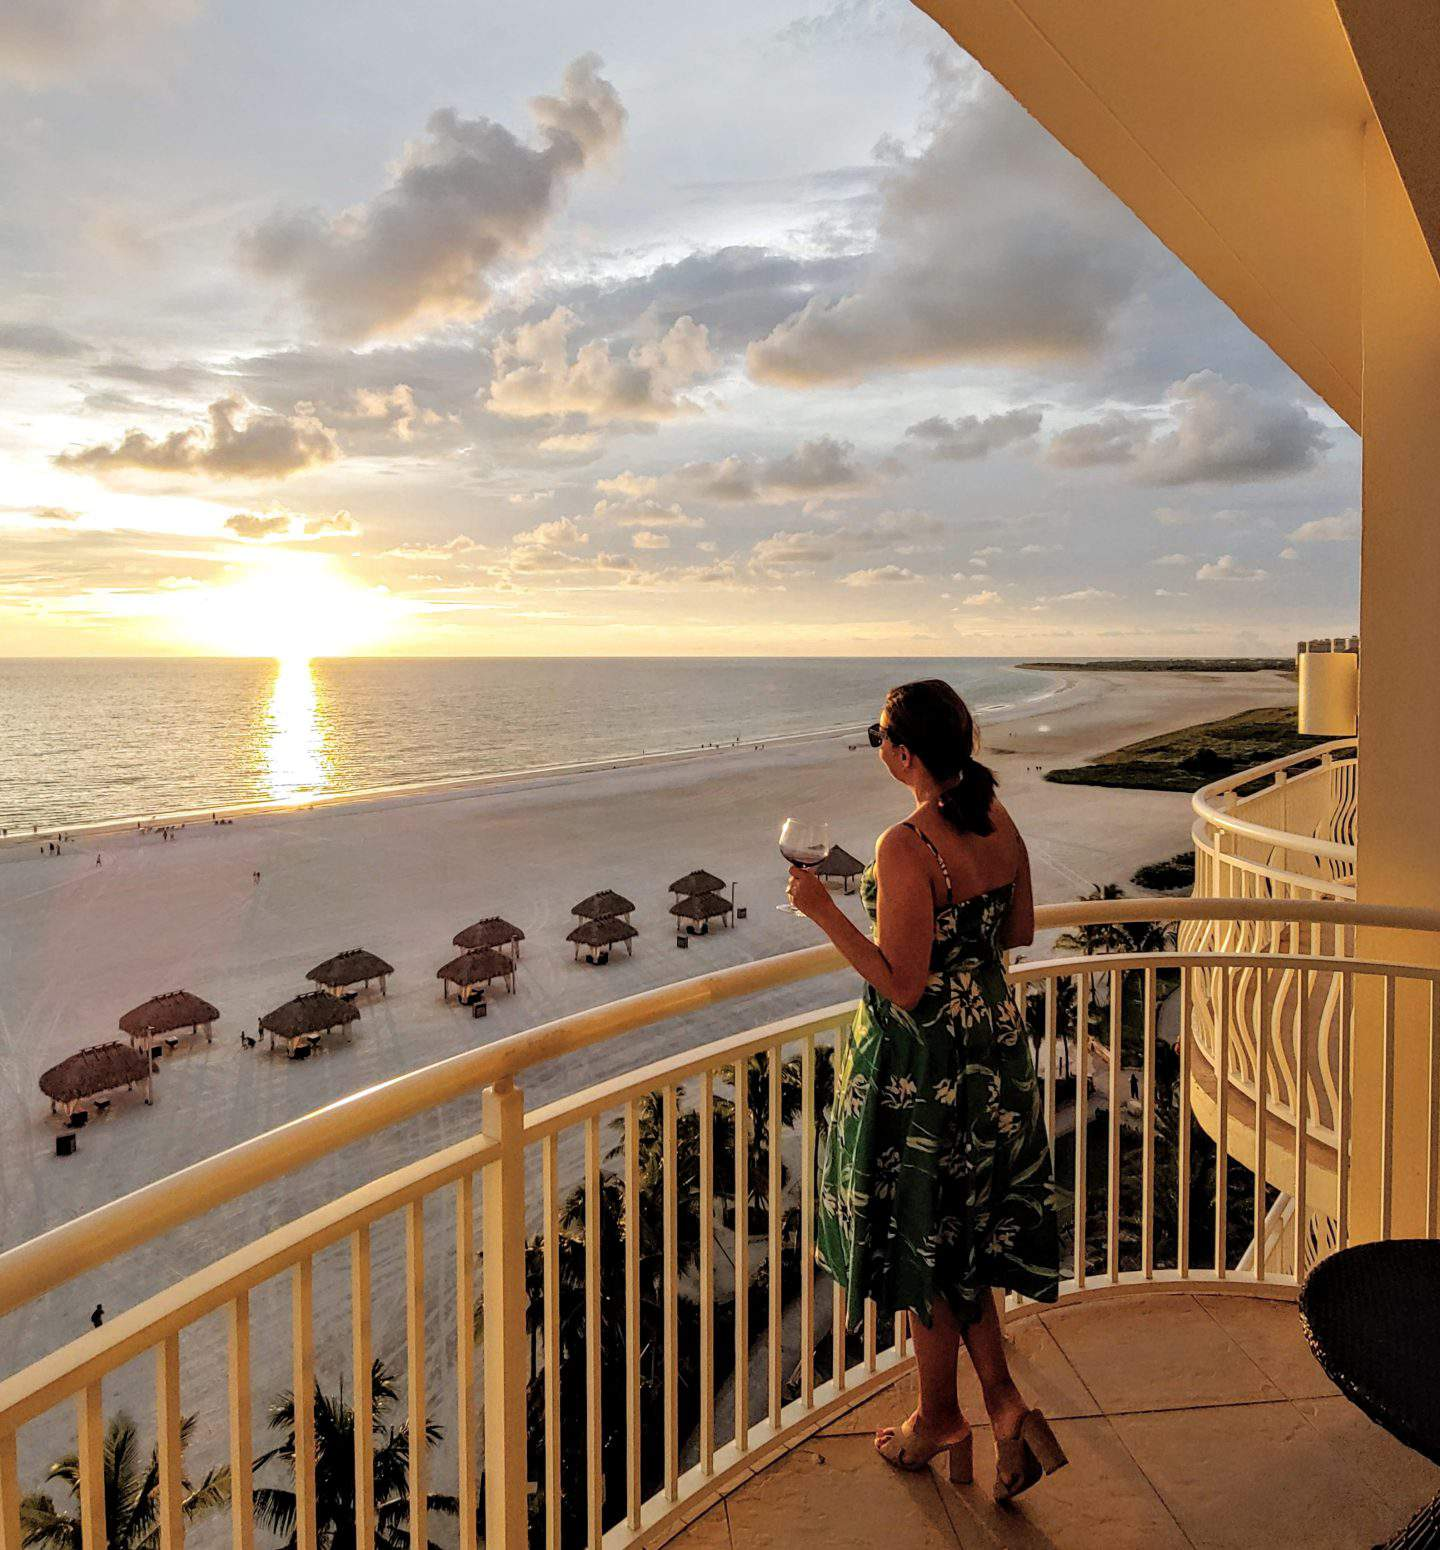 10 Reasons To Stay At The Jw Marriott Marco Island Beach